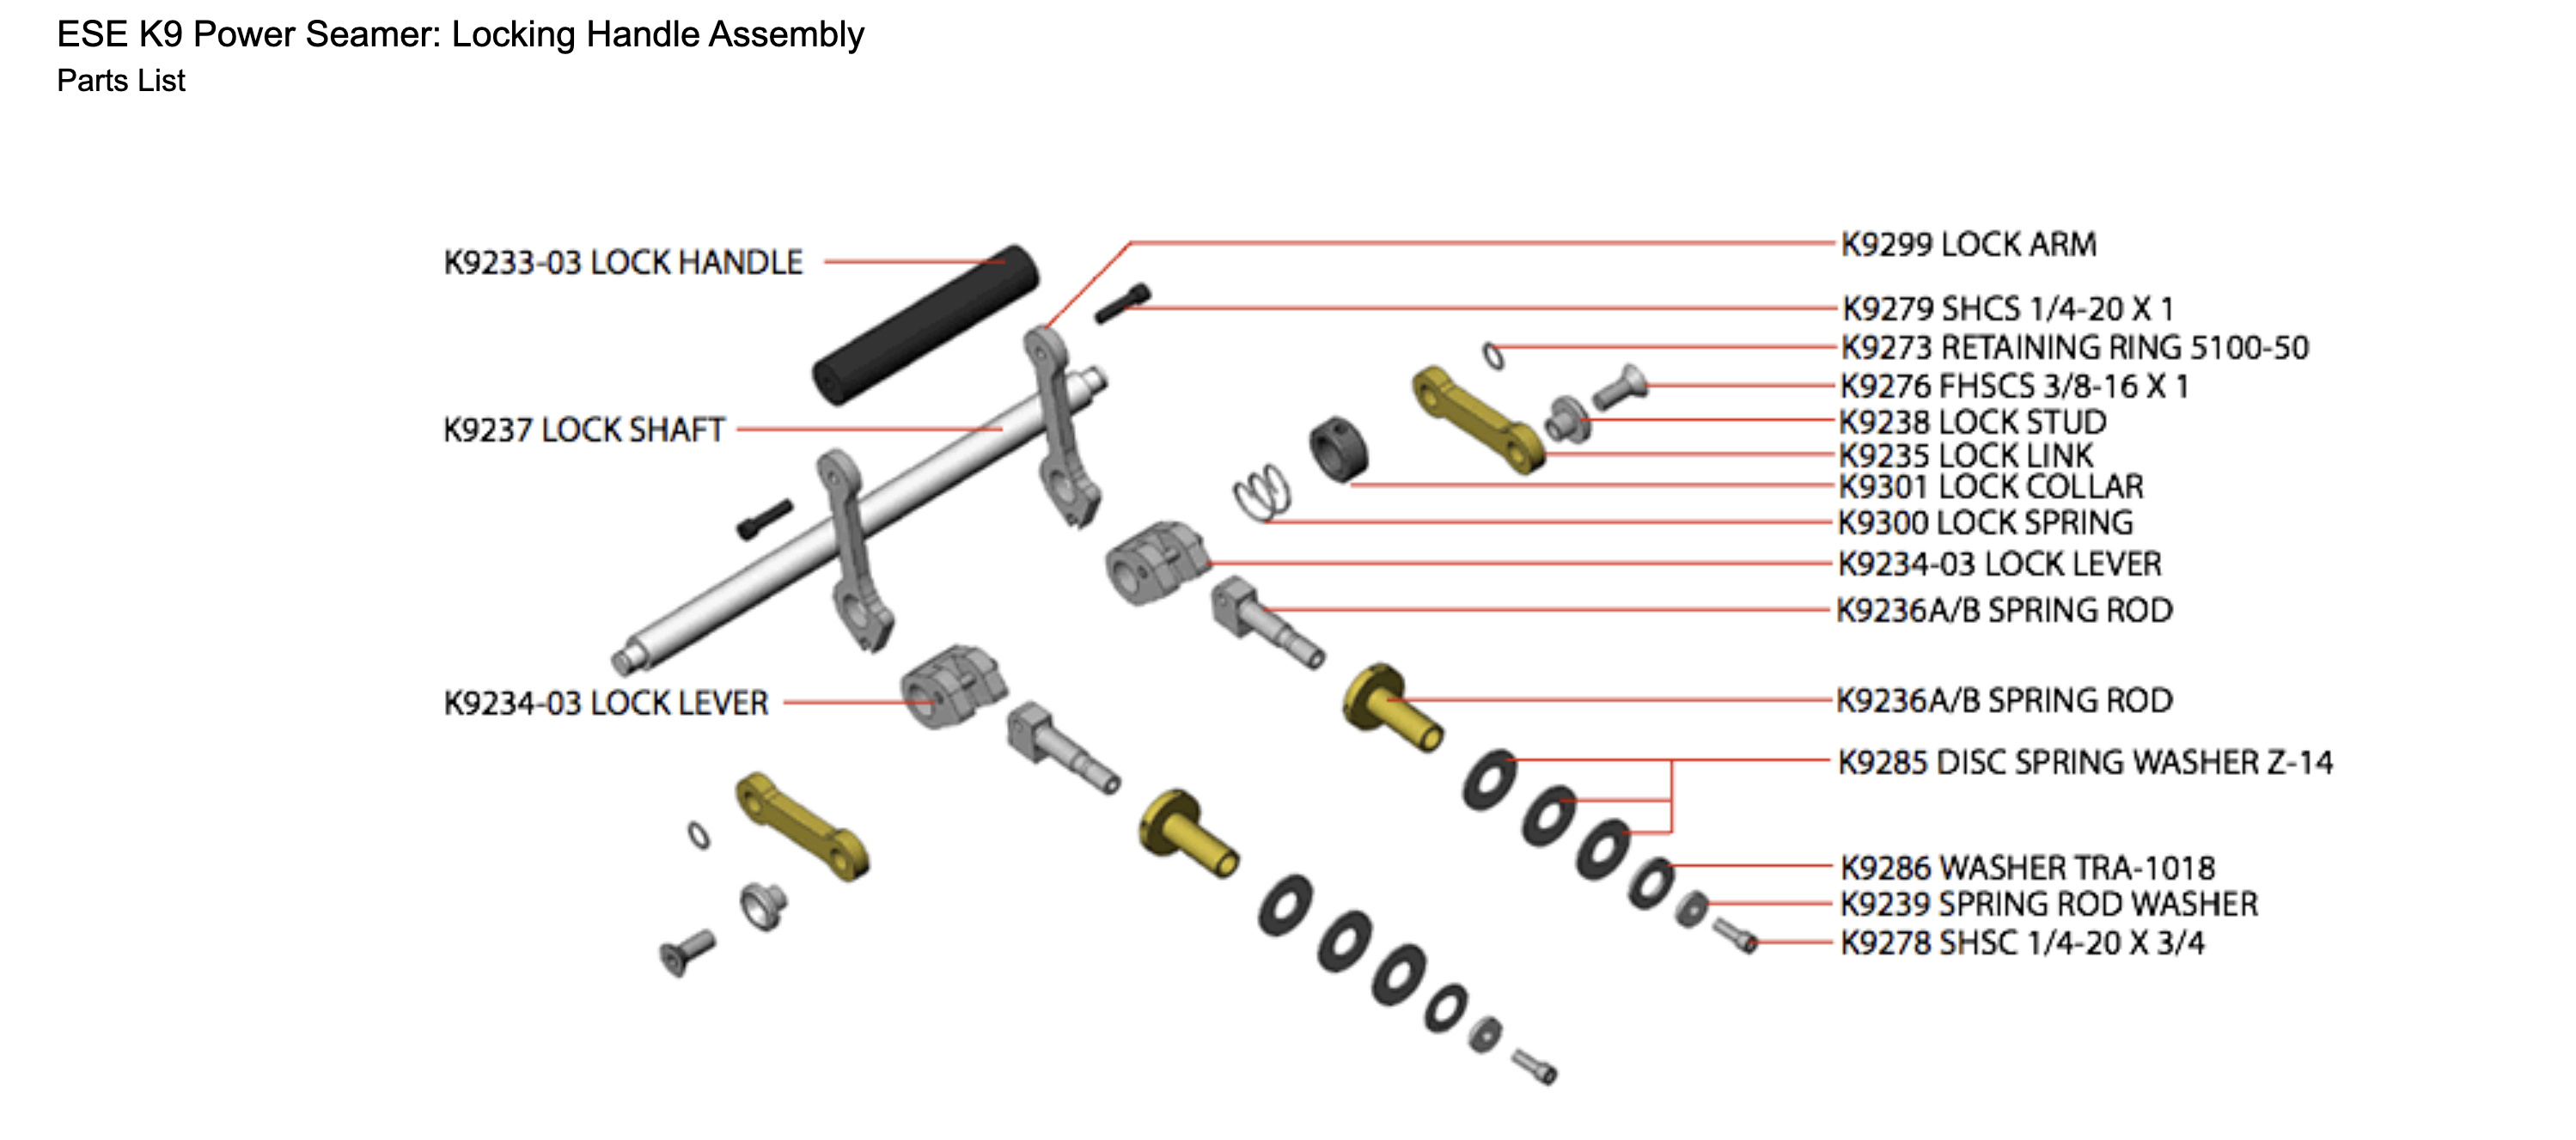 ese-k9-power-seamer-locking-handle-assembly